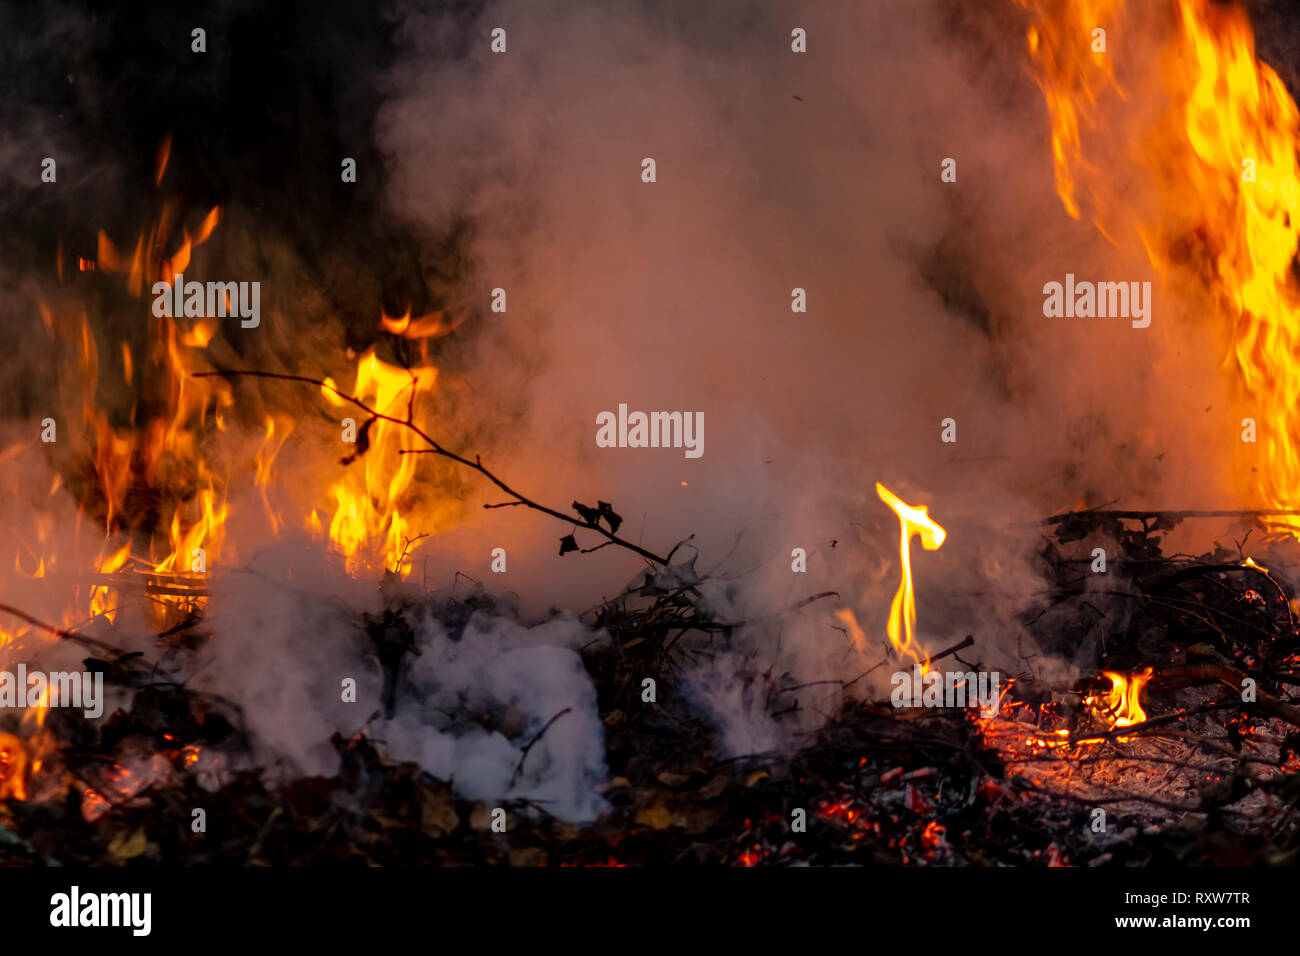 Forest wildfire at night whole area covered by flame and clouds of dark smoke. Distorted details due to high temperature and evaporation gases - Stock Image